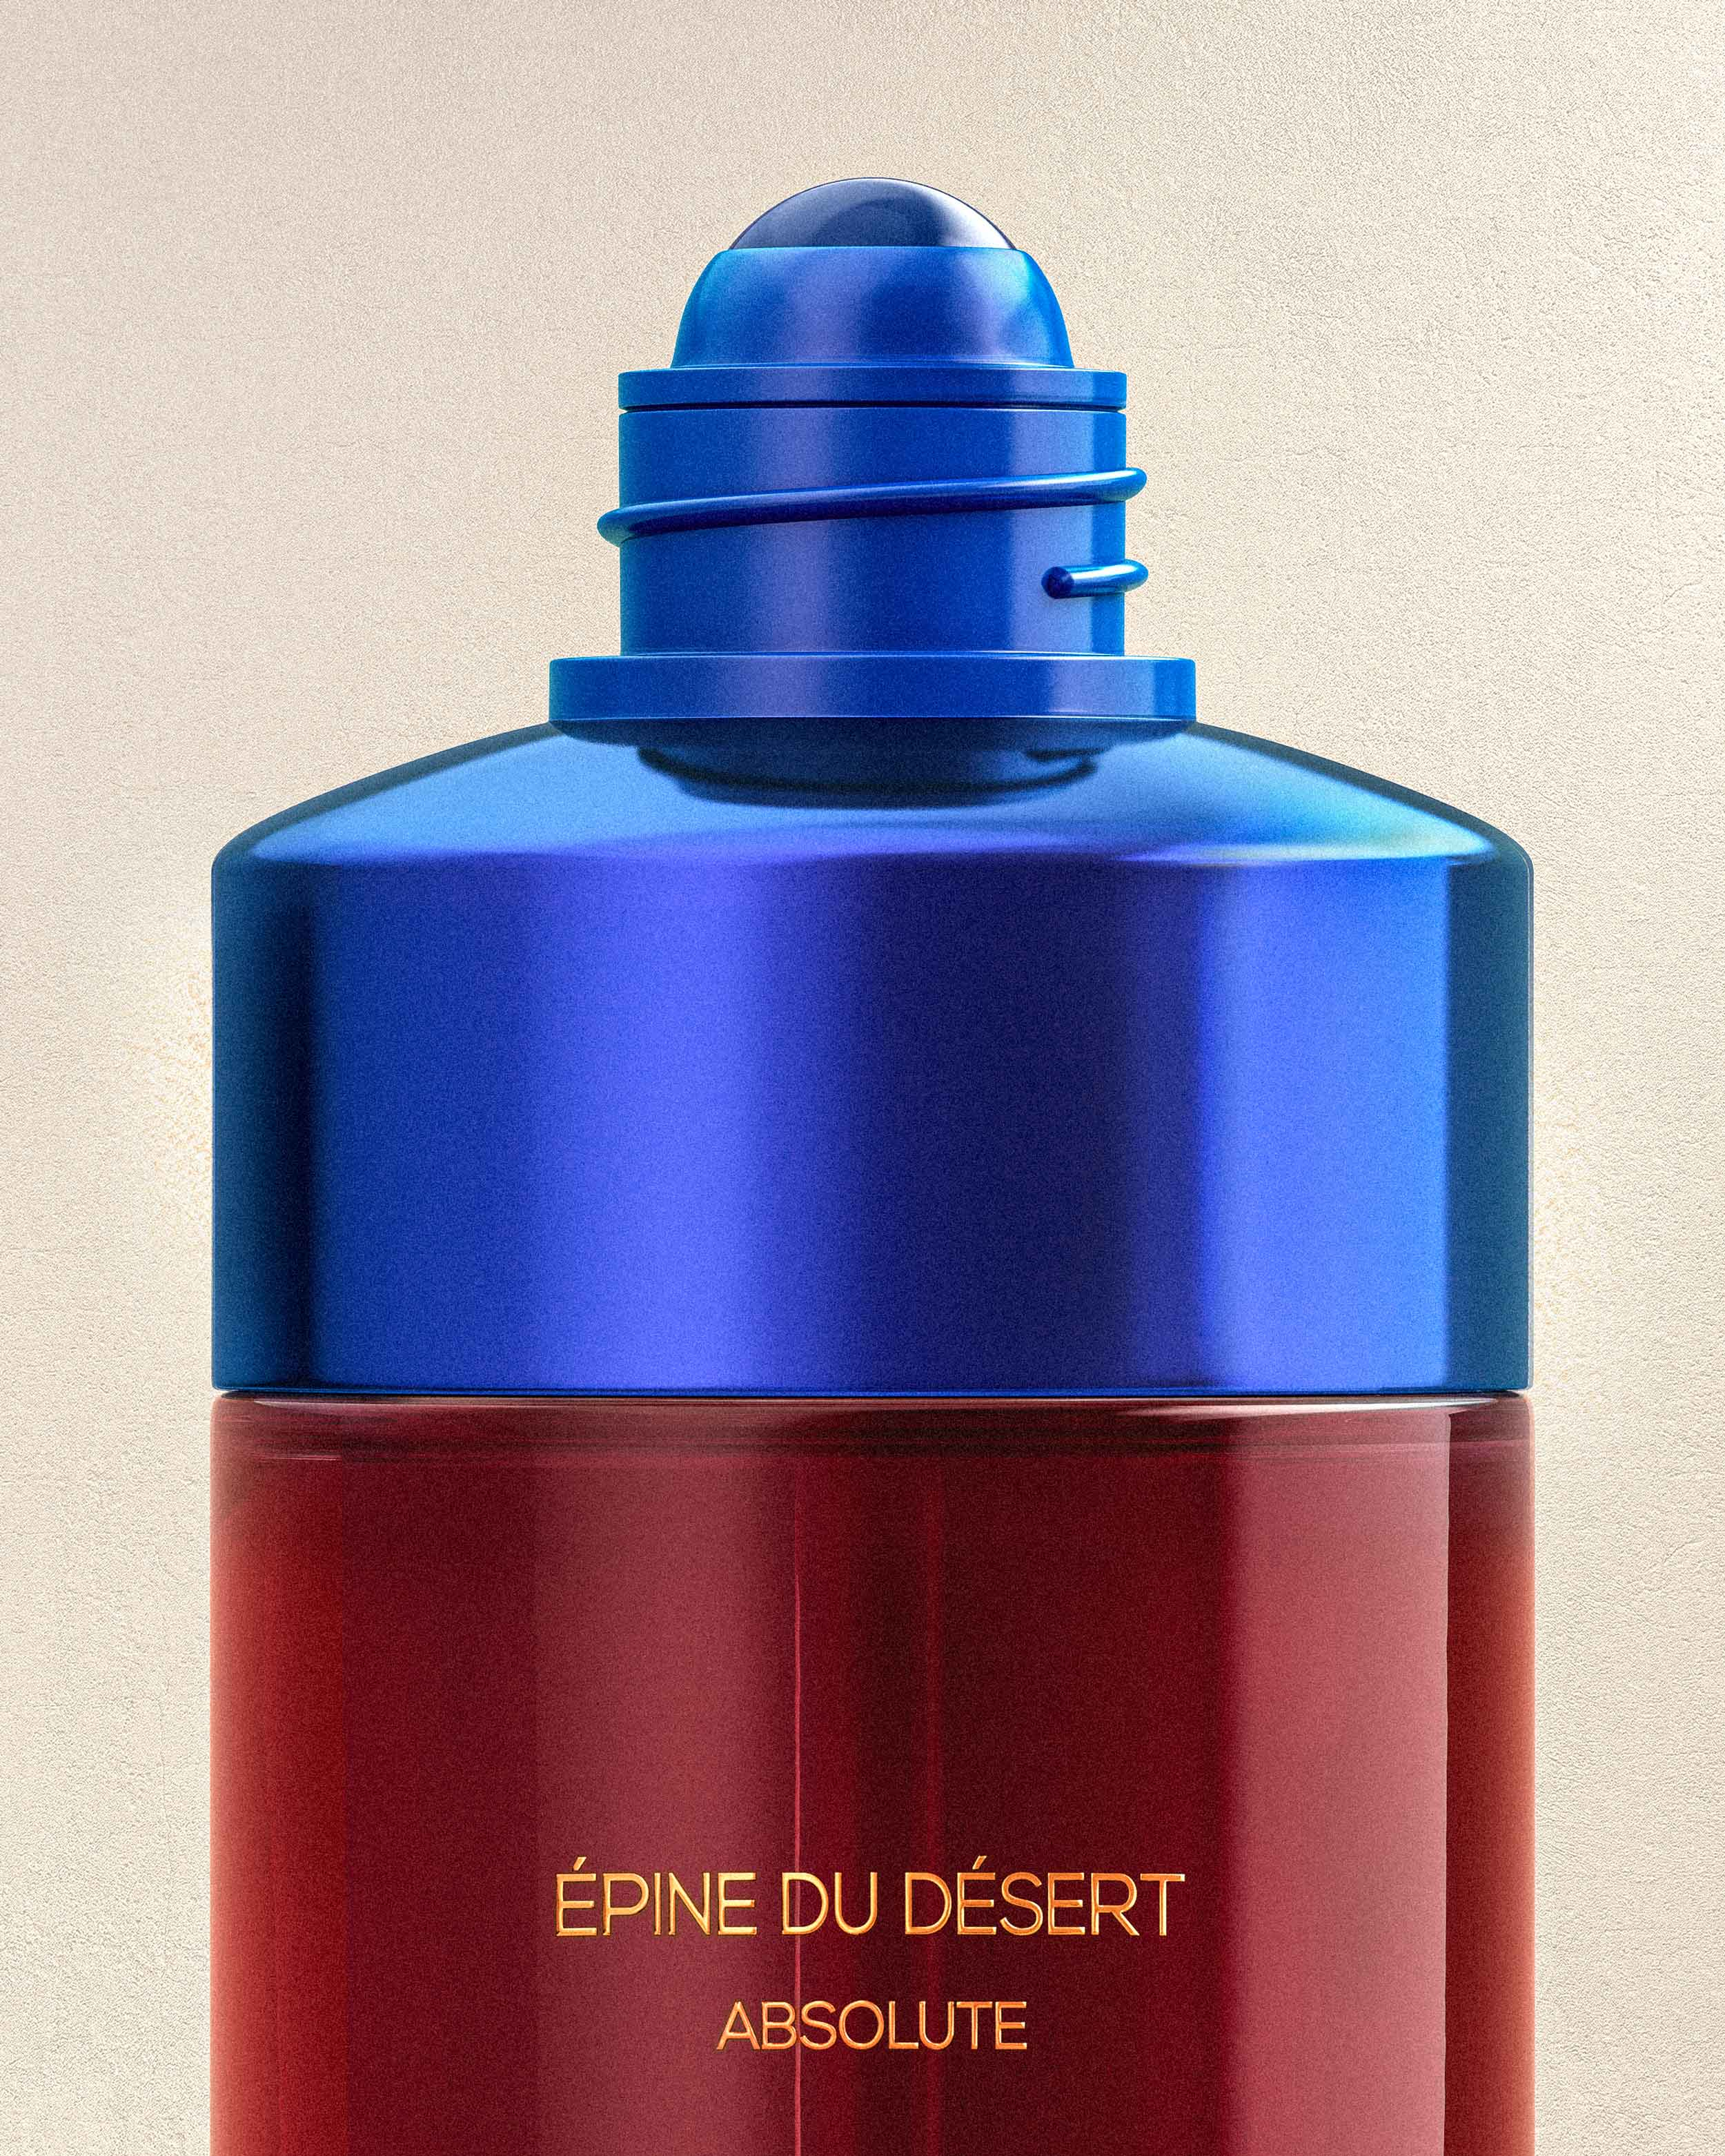 OJAR Absolute Epine Du Desert Perfume Roll-on